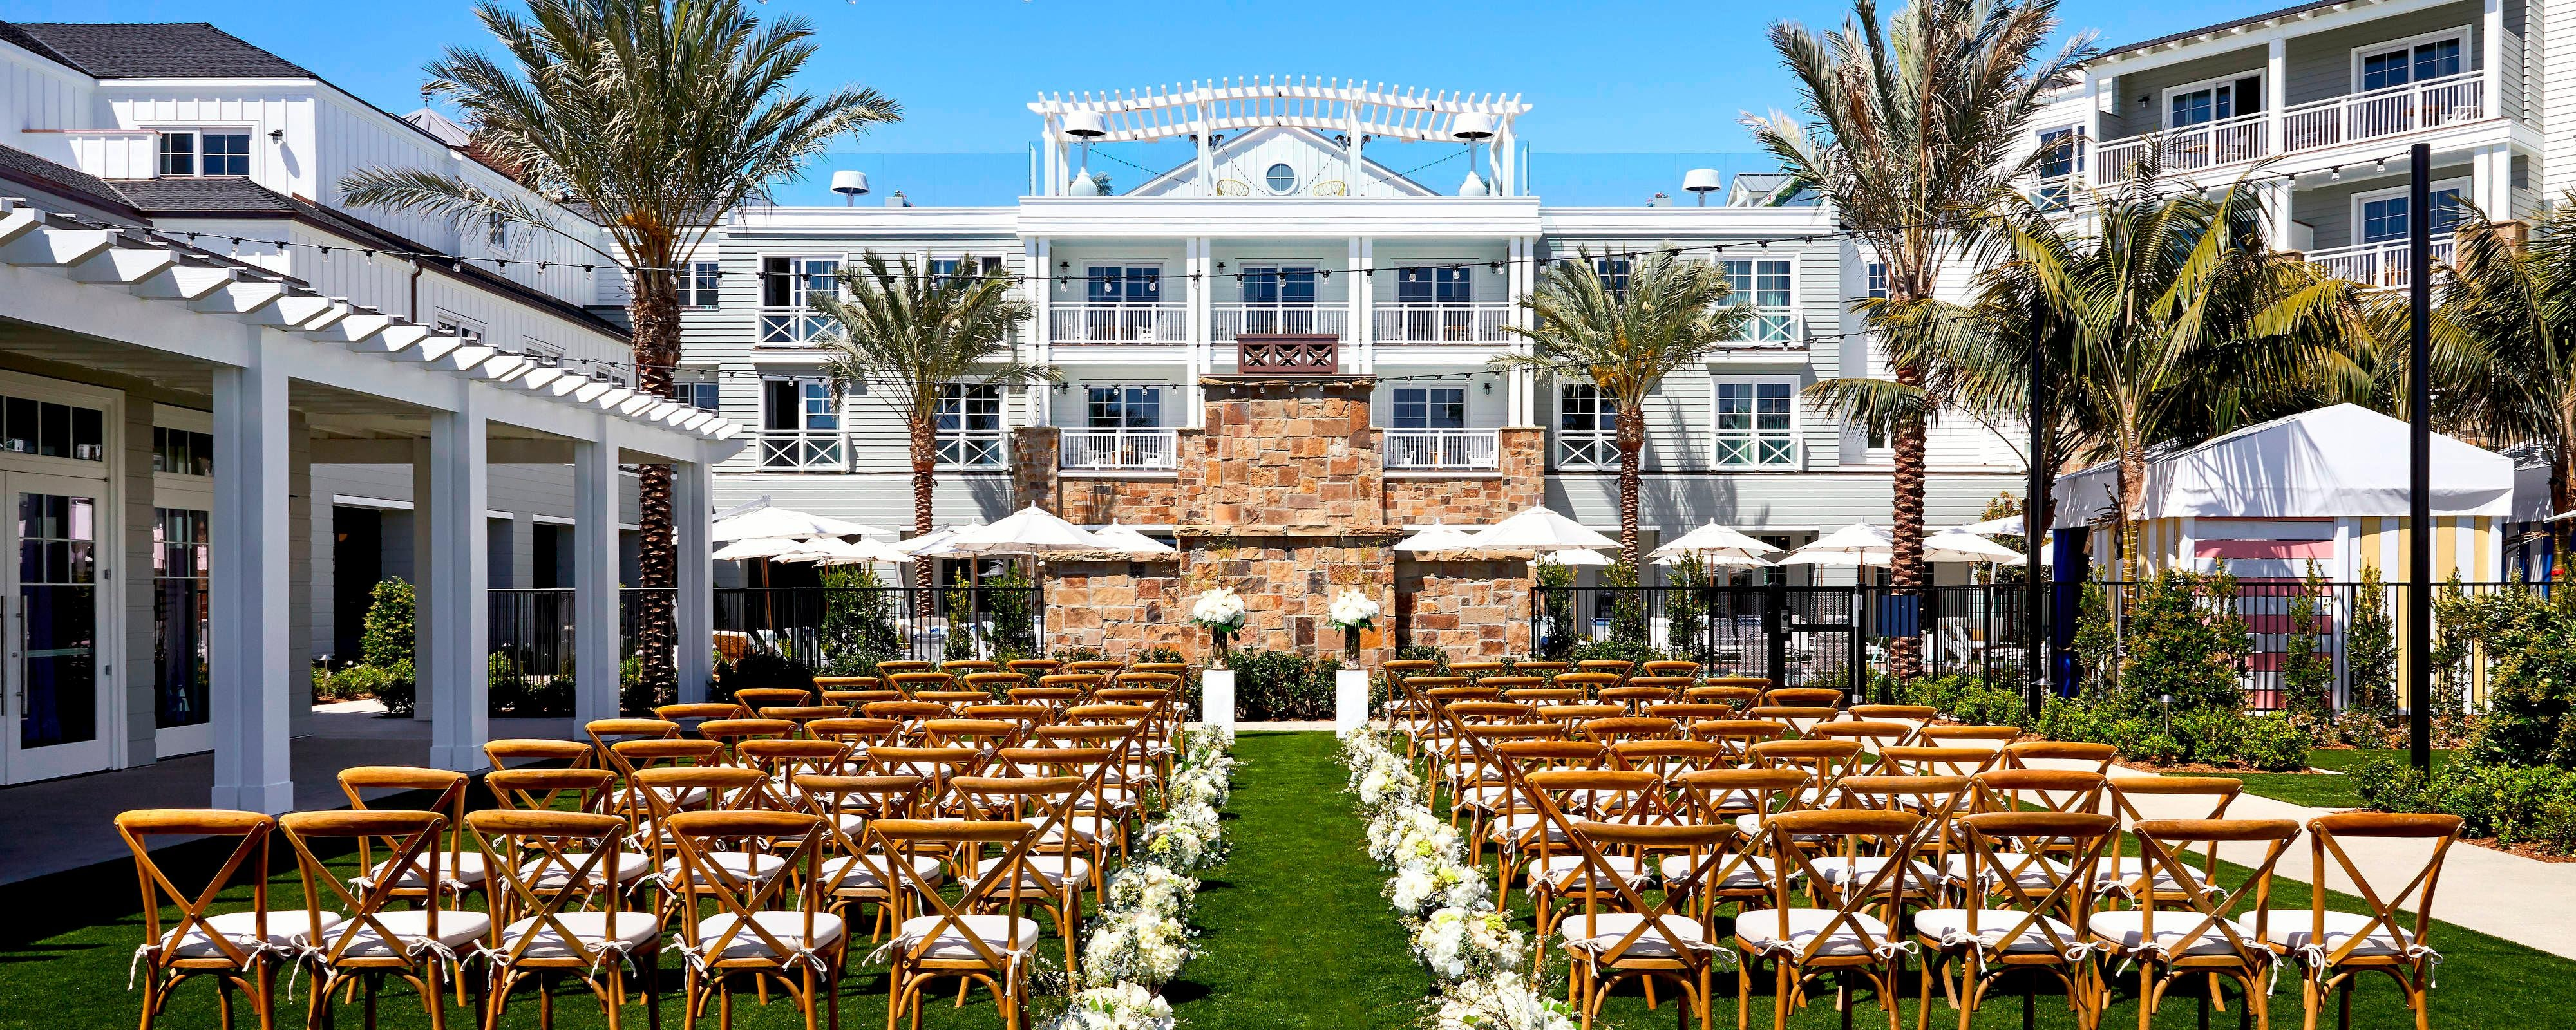 Wedding Planners And Venues In Newport Beach Lido House Autograph Collection